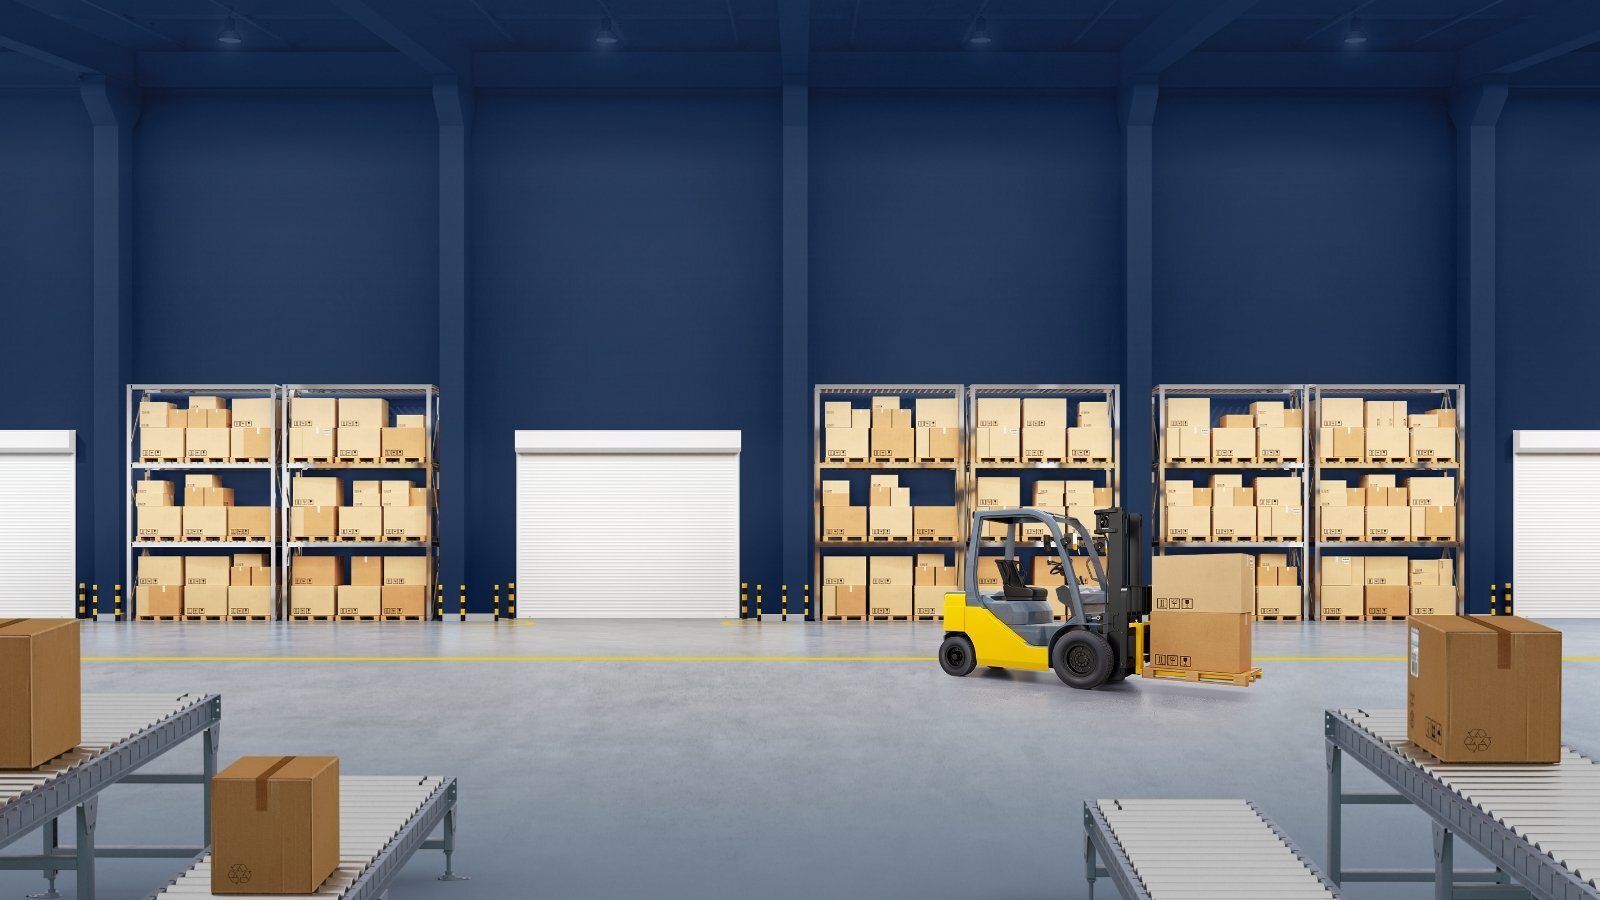 Forklift in warehouse filled with boxes